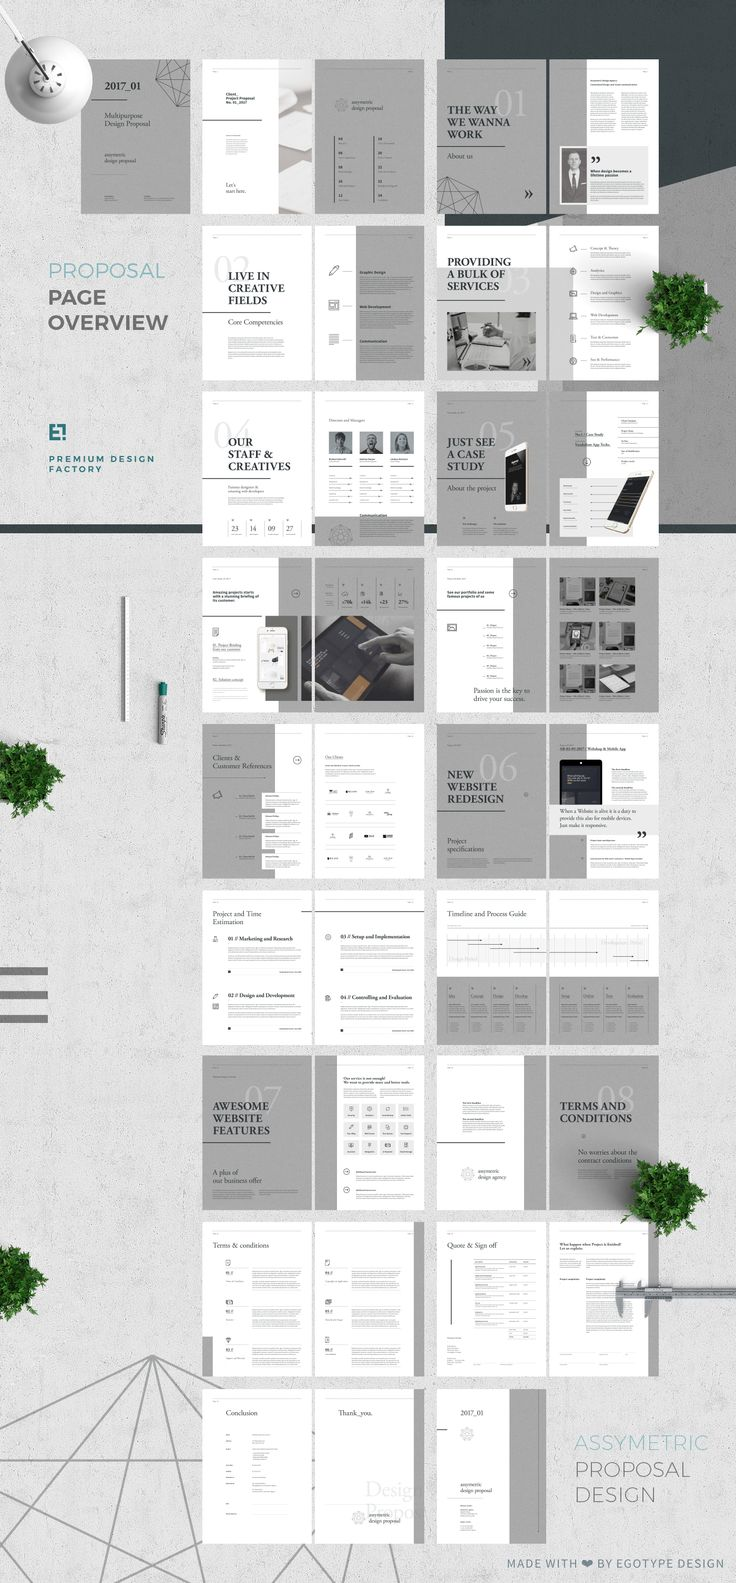 17 Best images about Contractproposal layouts – Proposal Layouts